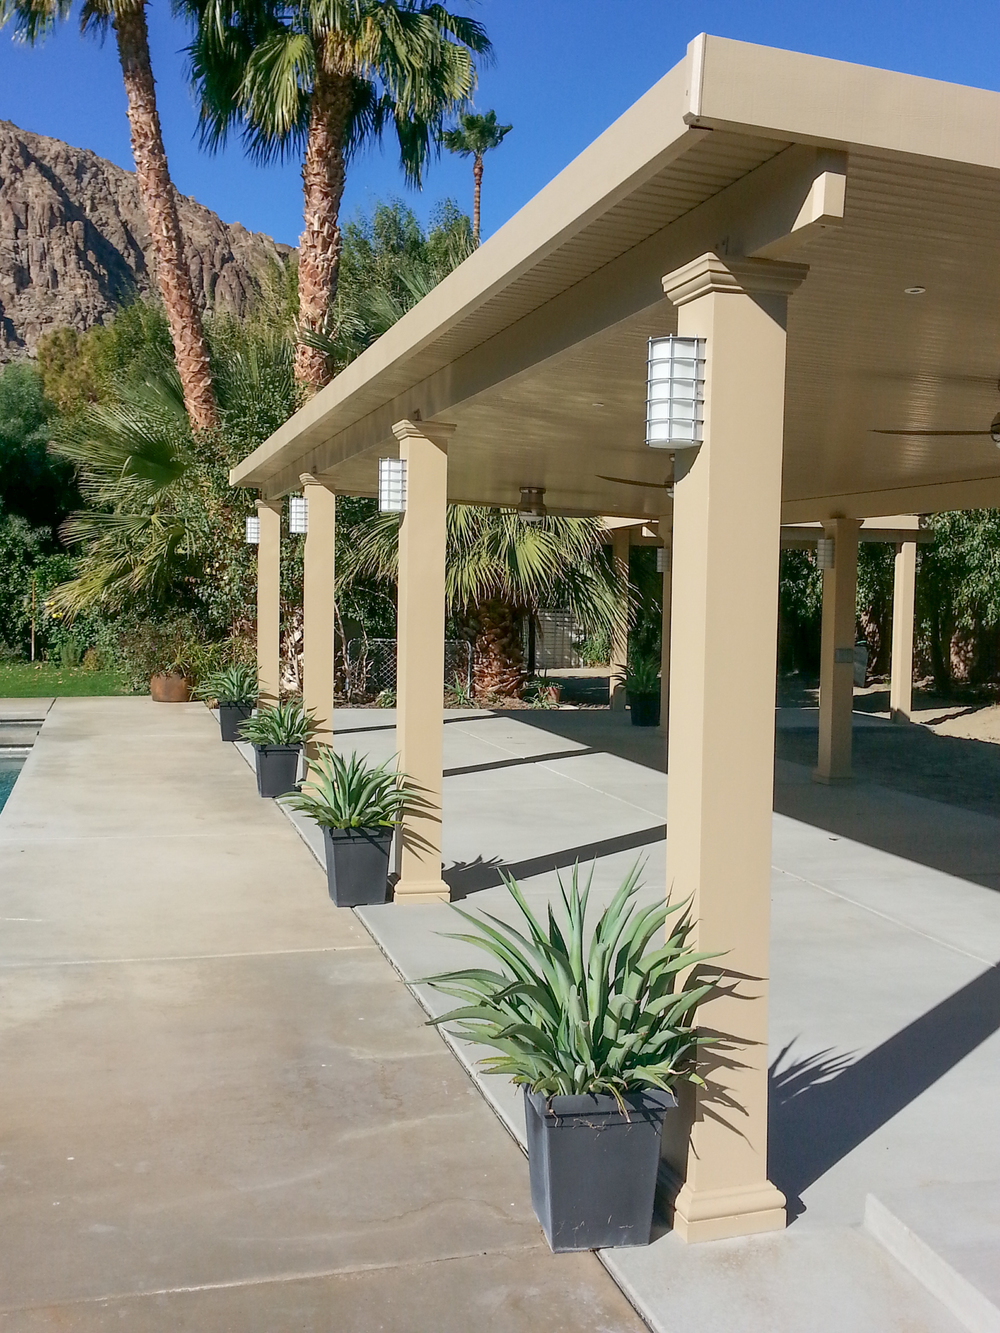 Patio cover designs patio ideas valley patios palm for Patio cover design plans